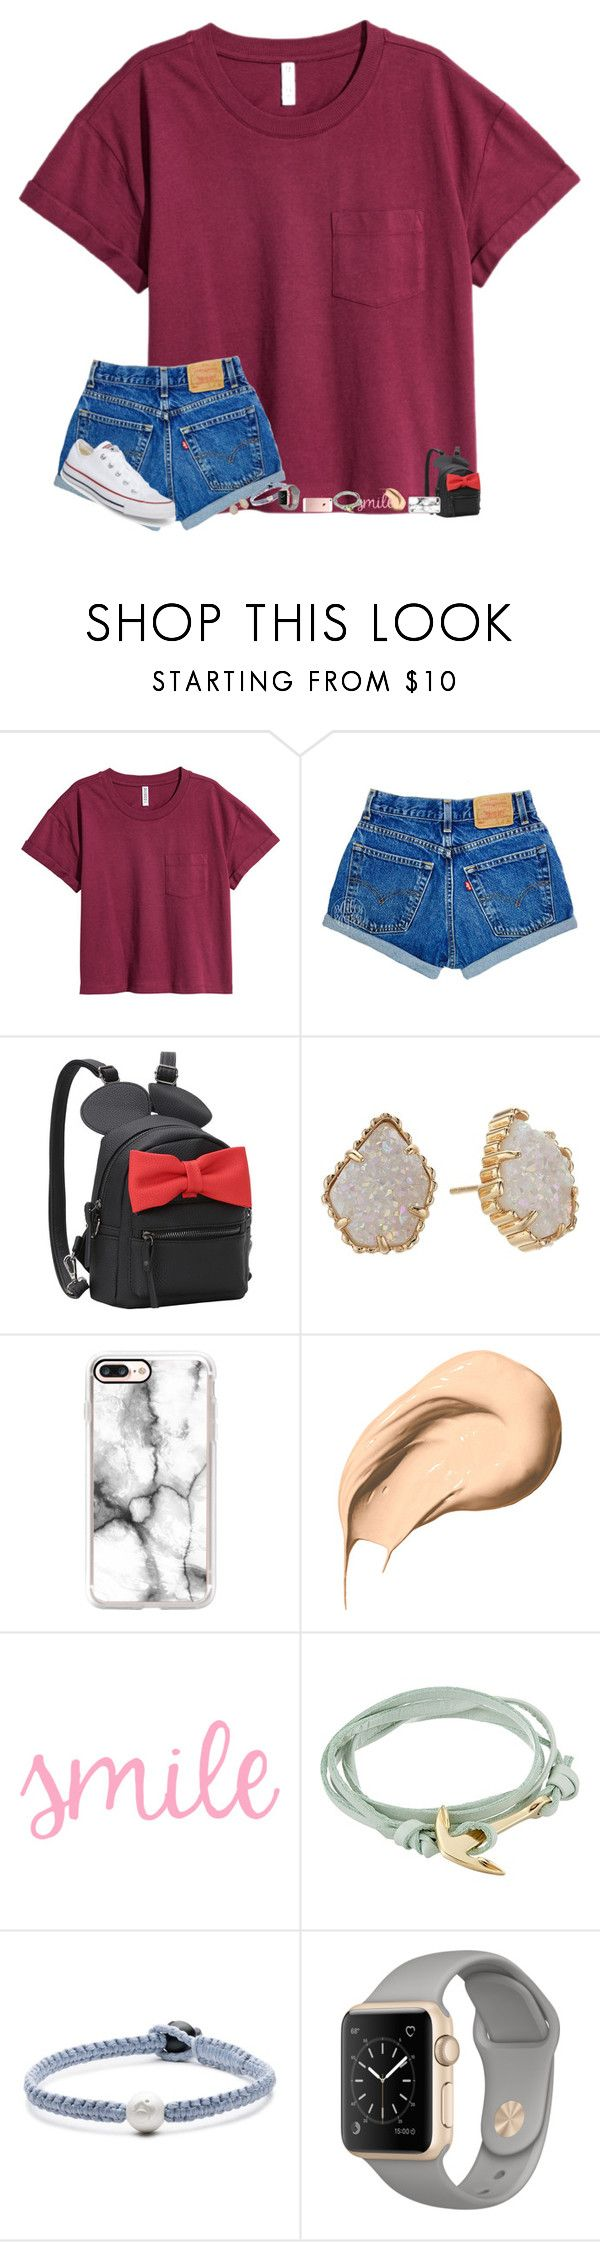 """""""•seeing for KING & COUNTRY in 12 hours?!?!•"""" by mackenzielacy814 on Polyvore featuring Kendra Scott, Casetify, Bobbi Brown Cosmetics, MIANSAI, Lokai, Converse, country and mrlloves"""